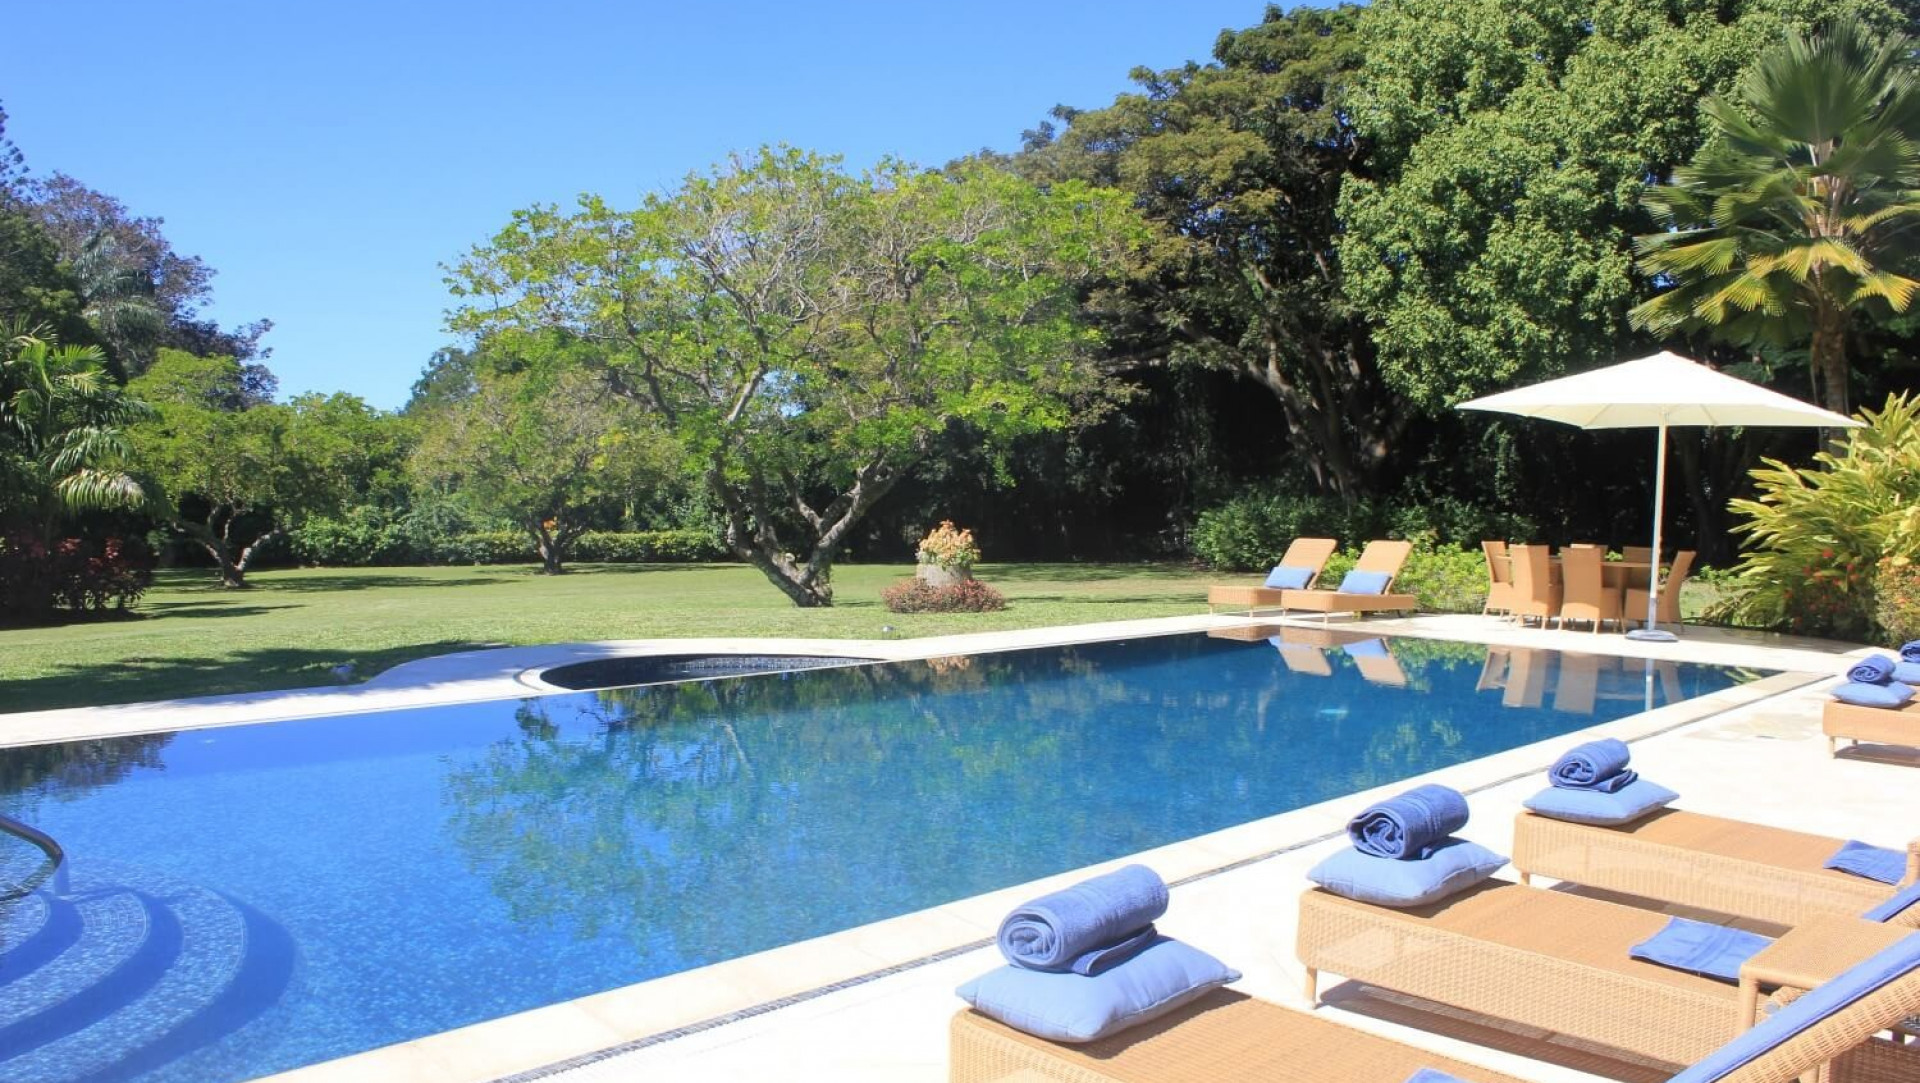 Outdoor Photo of Swimming Pool 6 Bedroom Villa in Sandy Lane with Private Pool & Tropical Garden